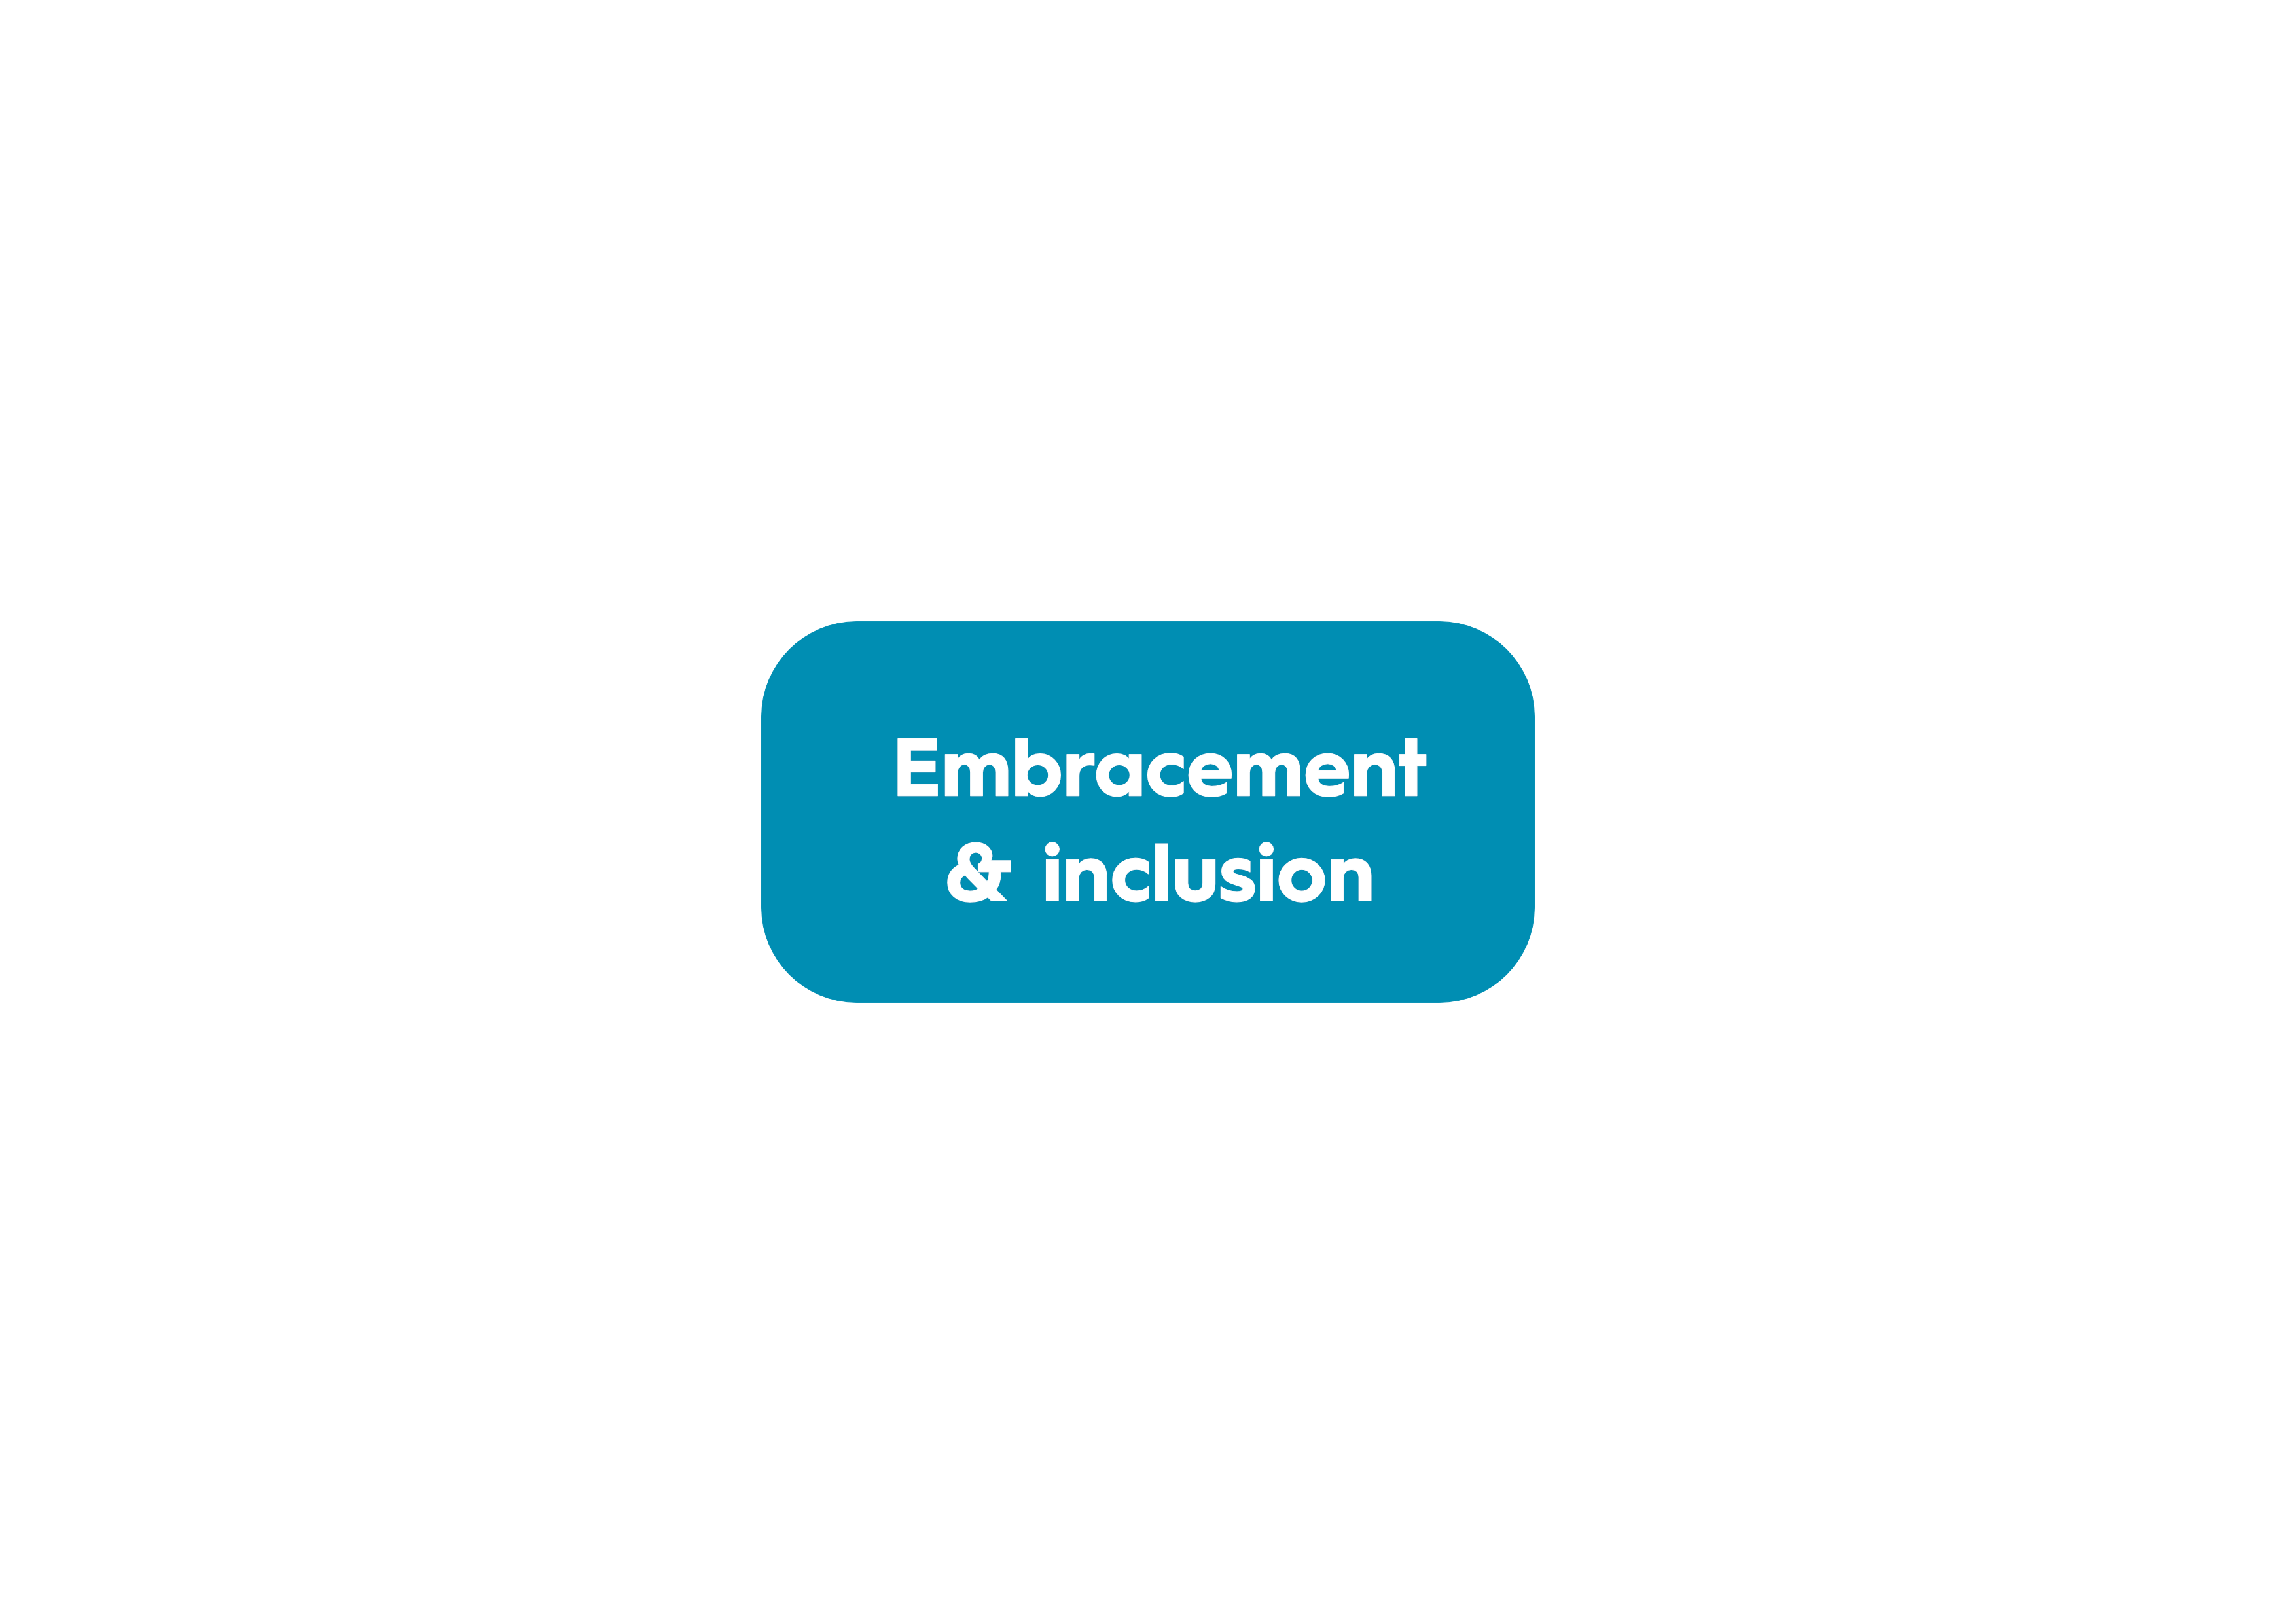 Embracement and inclusion_eden